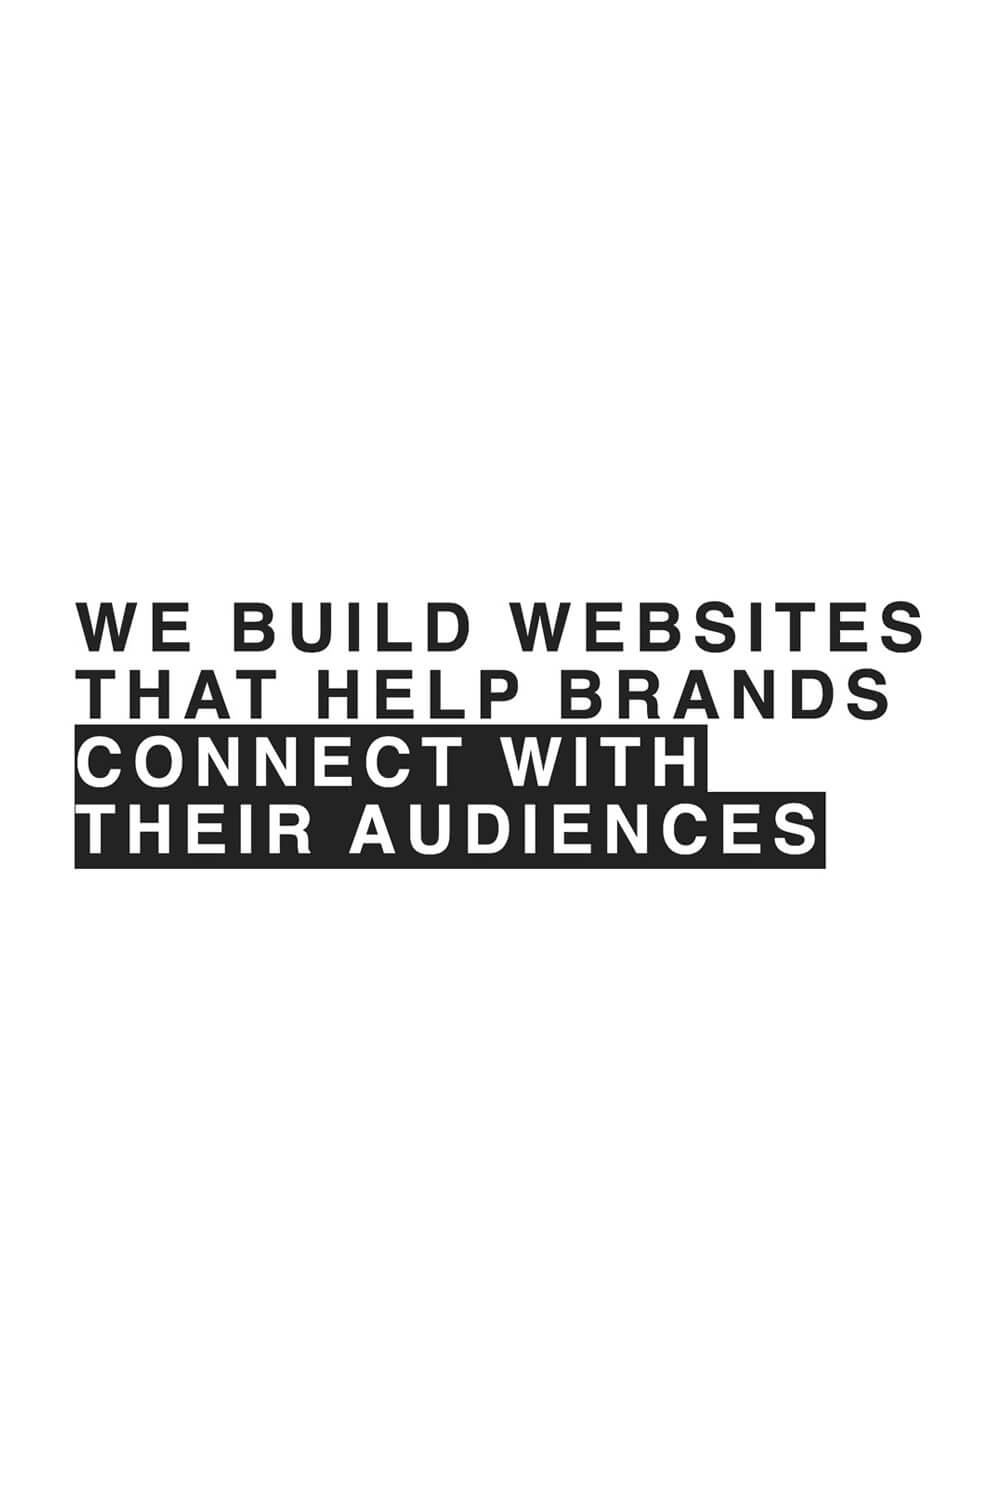 We build websites that help brands connect with audiences